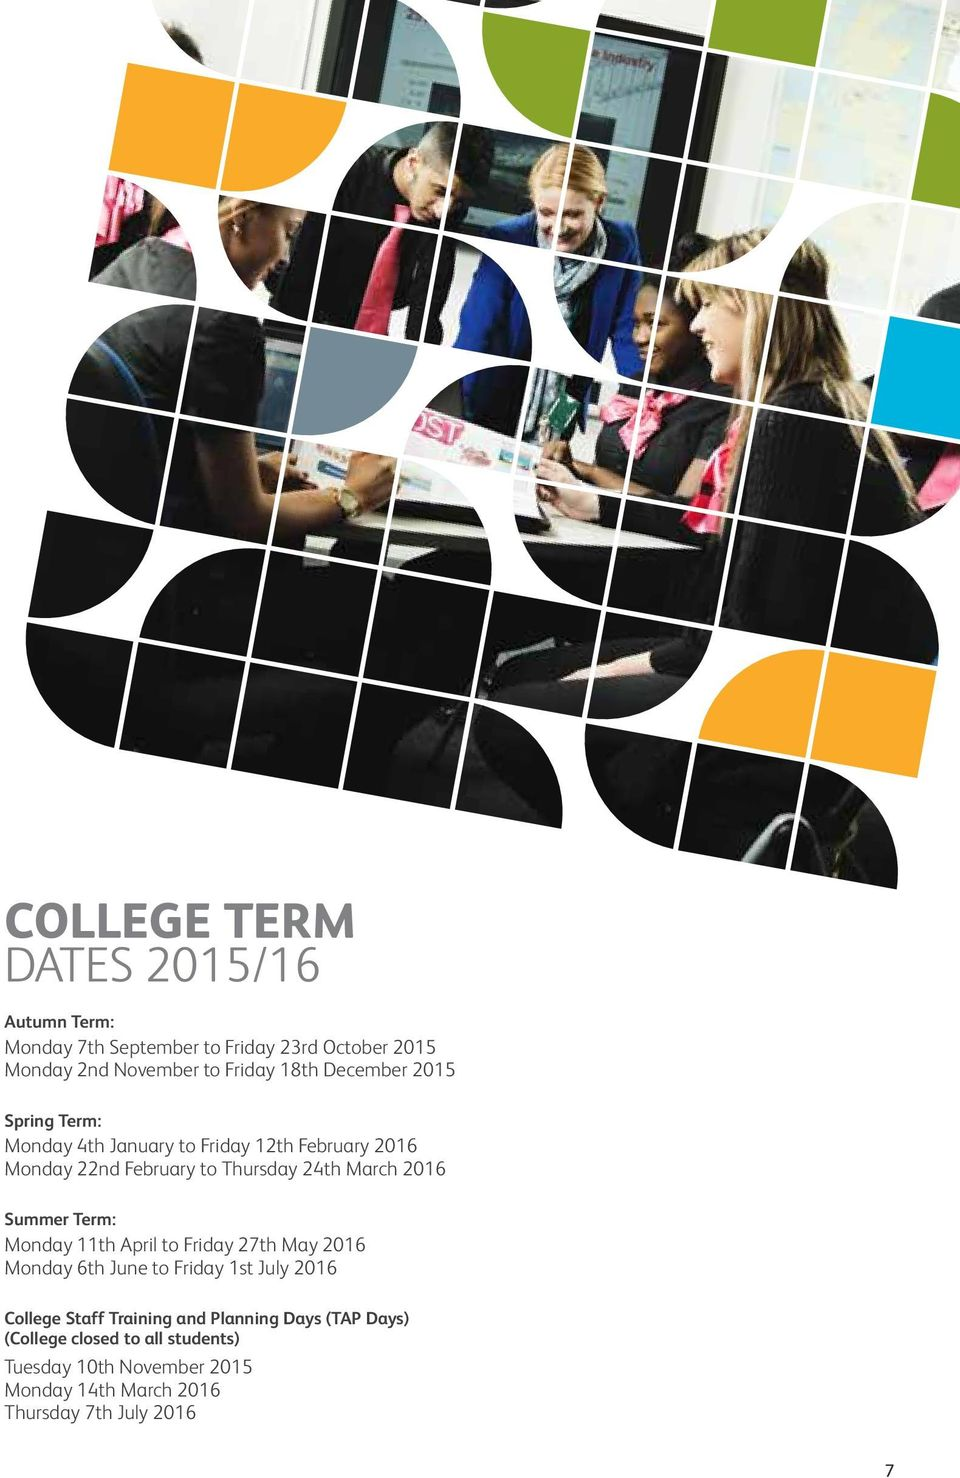 Summer Term: Monday 11th April to Friday 27th May 2016 Monday 6th June to Friday 1st July 2016 College Staff Training and